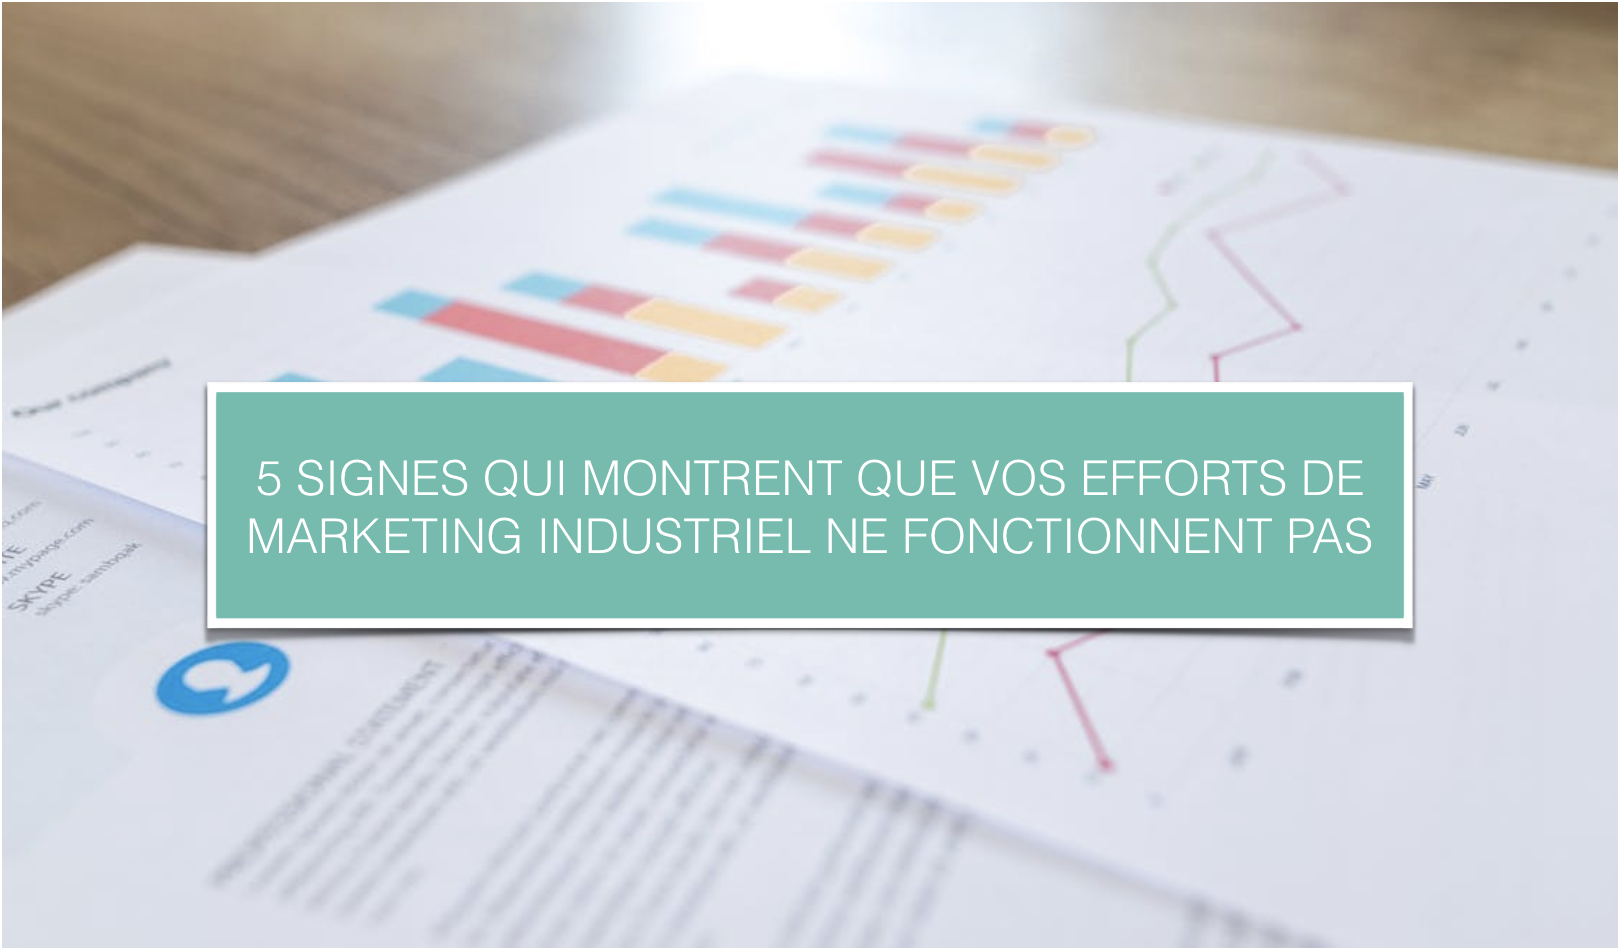 5 SIGNES QUI MONTRENT QUE VOS EFFORTS DE MARKETING INDUSTRIEL NE FONCTIONNENT PAS.png